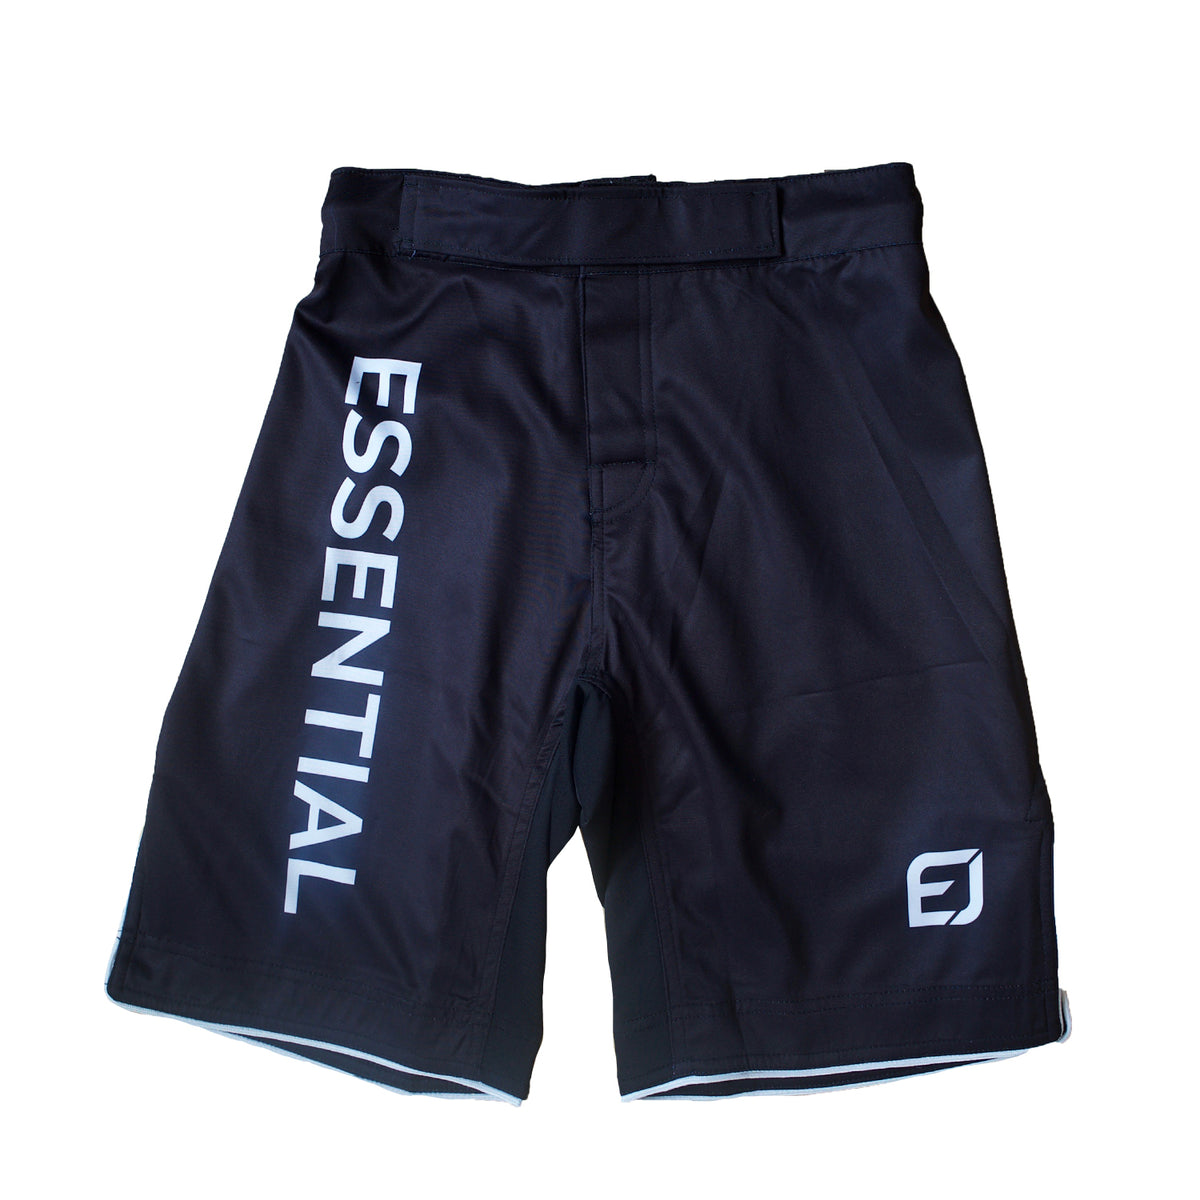 EJ KIDS Fight Shorts